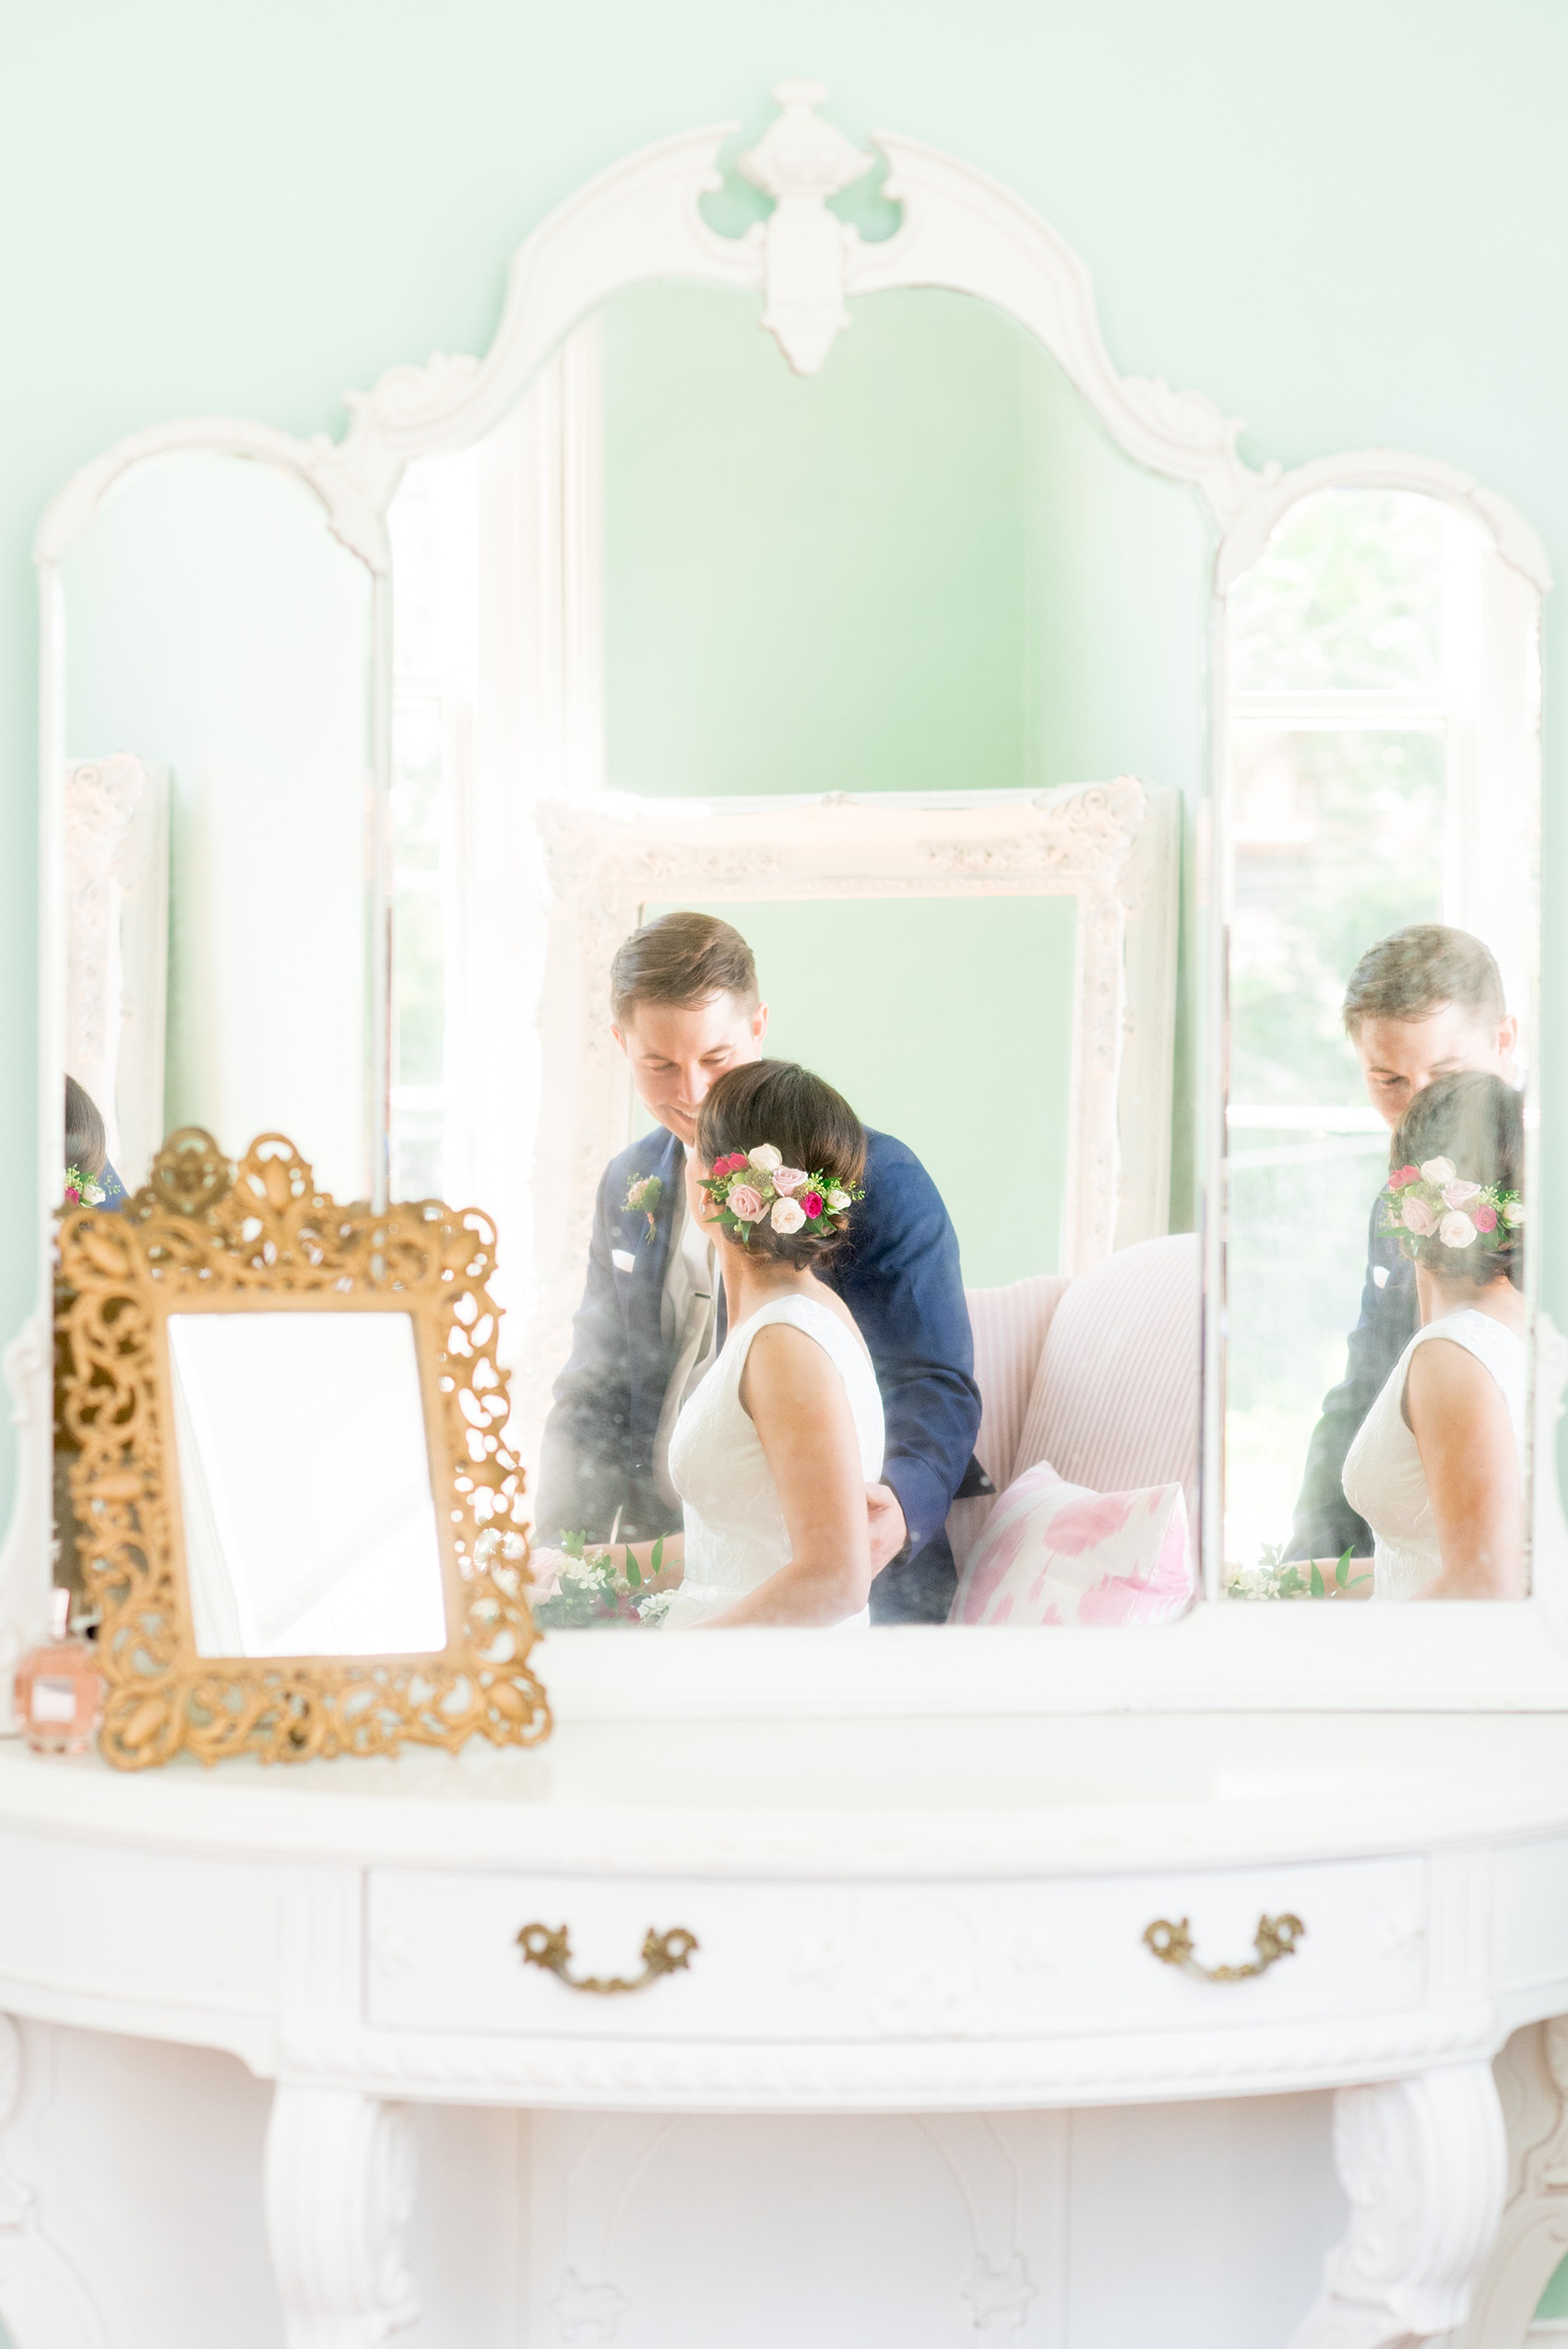 Mikkel Paige Photography pictures from a wedding at Merrimon-Wynne House in Raleigh, NC. Photo of the bride and groom in the mirror of the bridal suite.